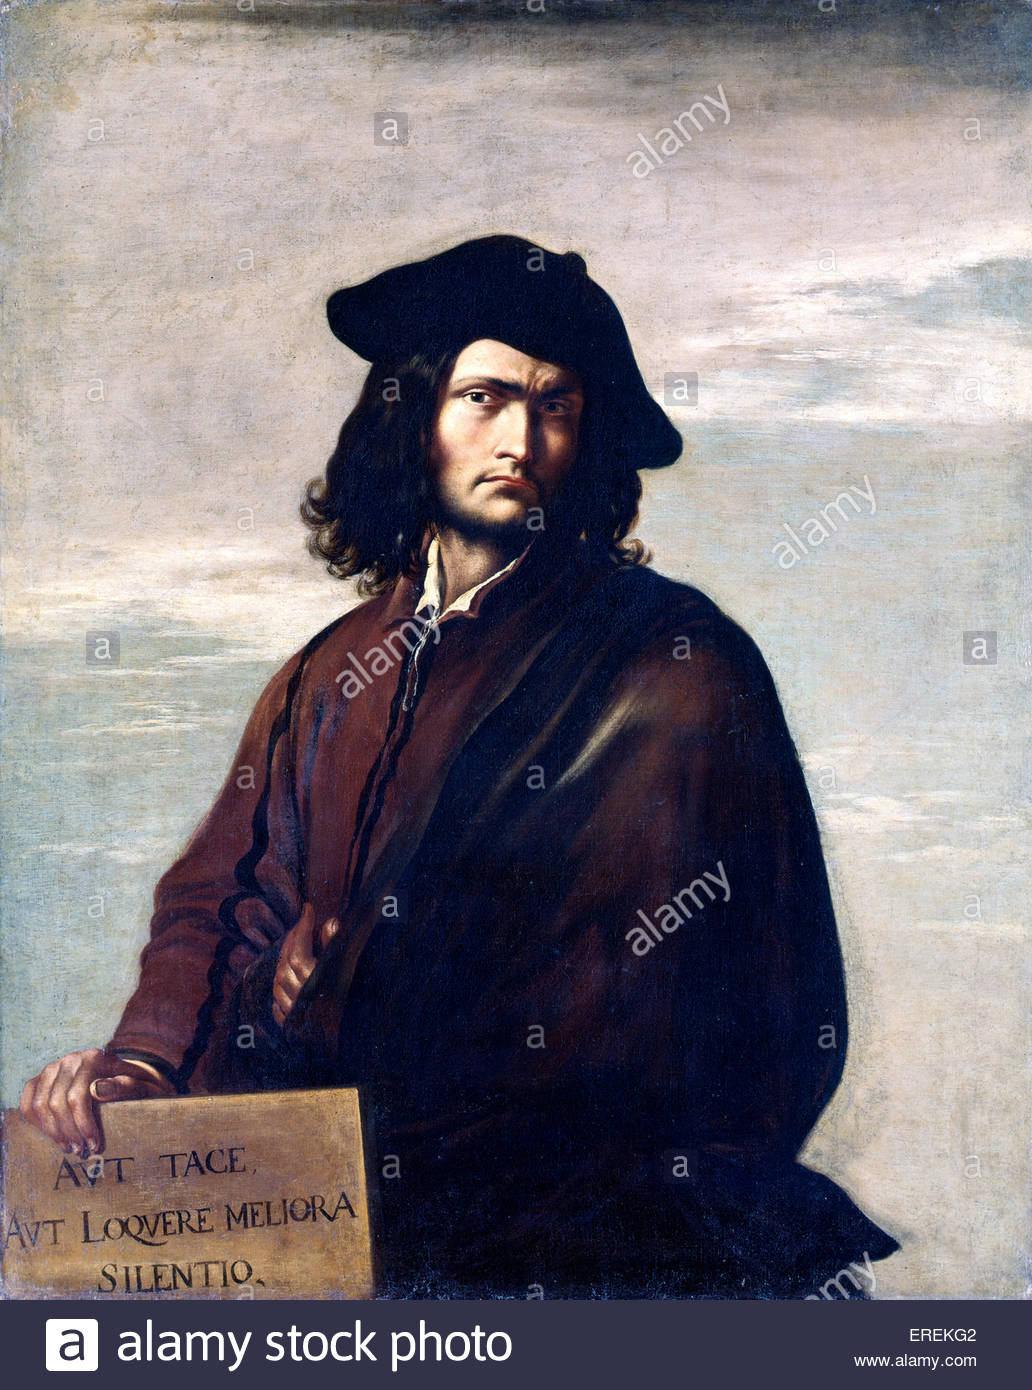 Self Portrait by Salvatore Rosa, Italian painter, printmaker and poet (1615 - 1673). Inscription in Latin translates - Stock Image